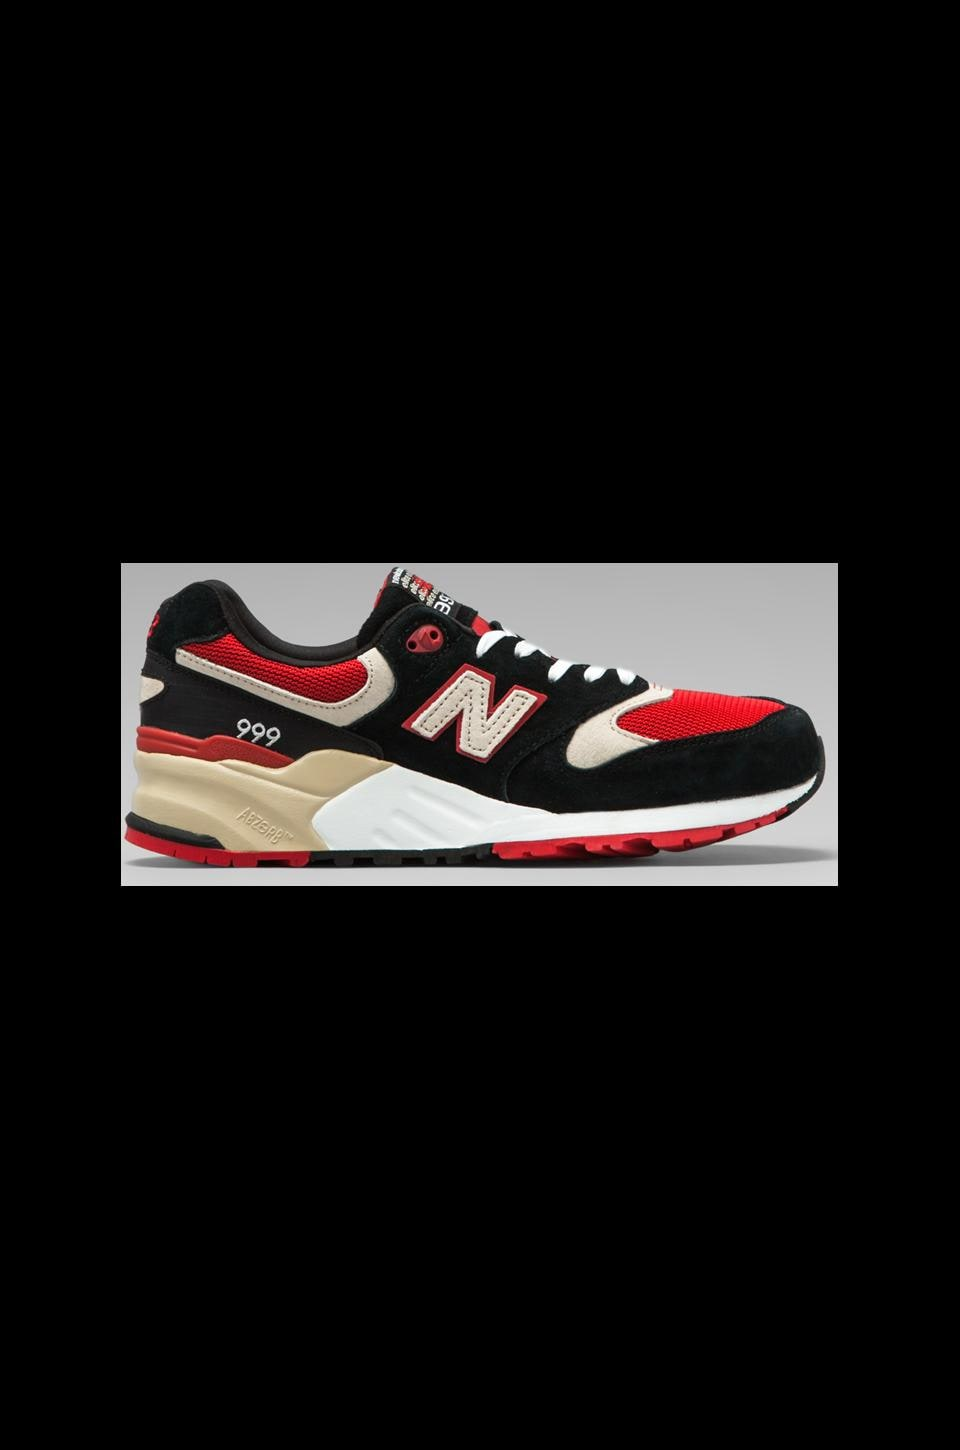 New Balance Elite Edition ML999 in Black/Red